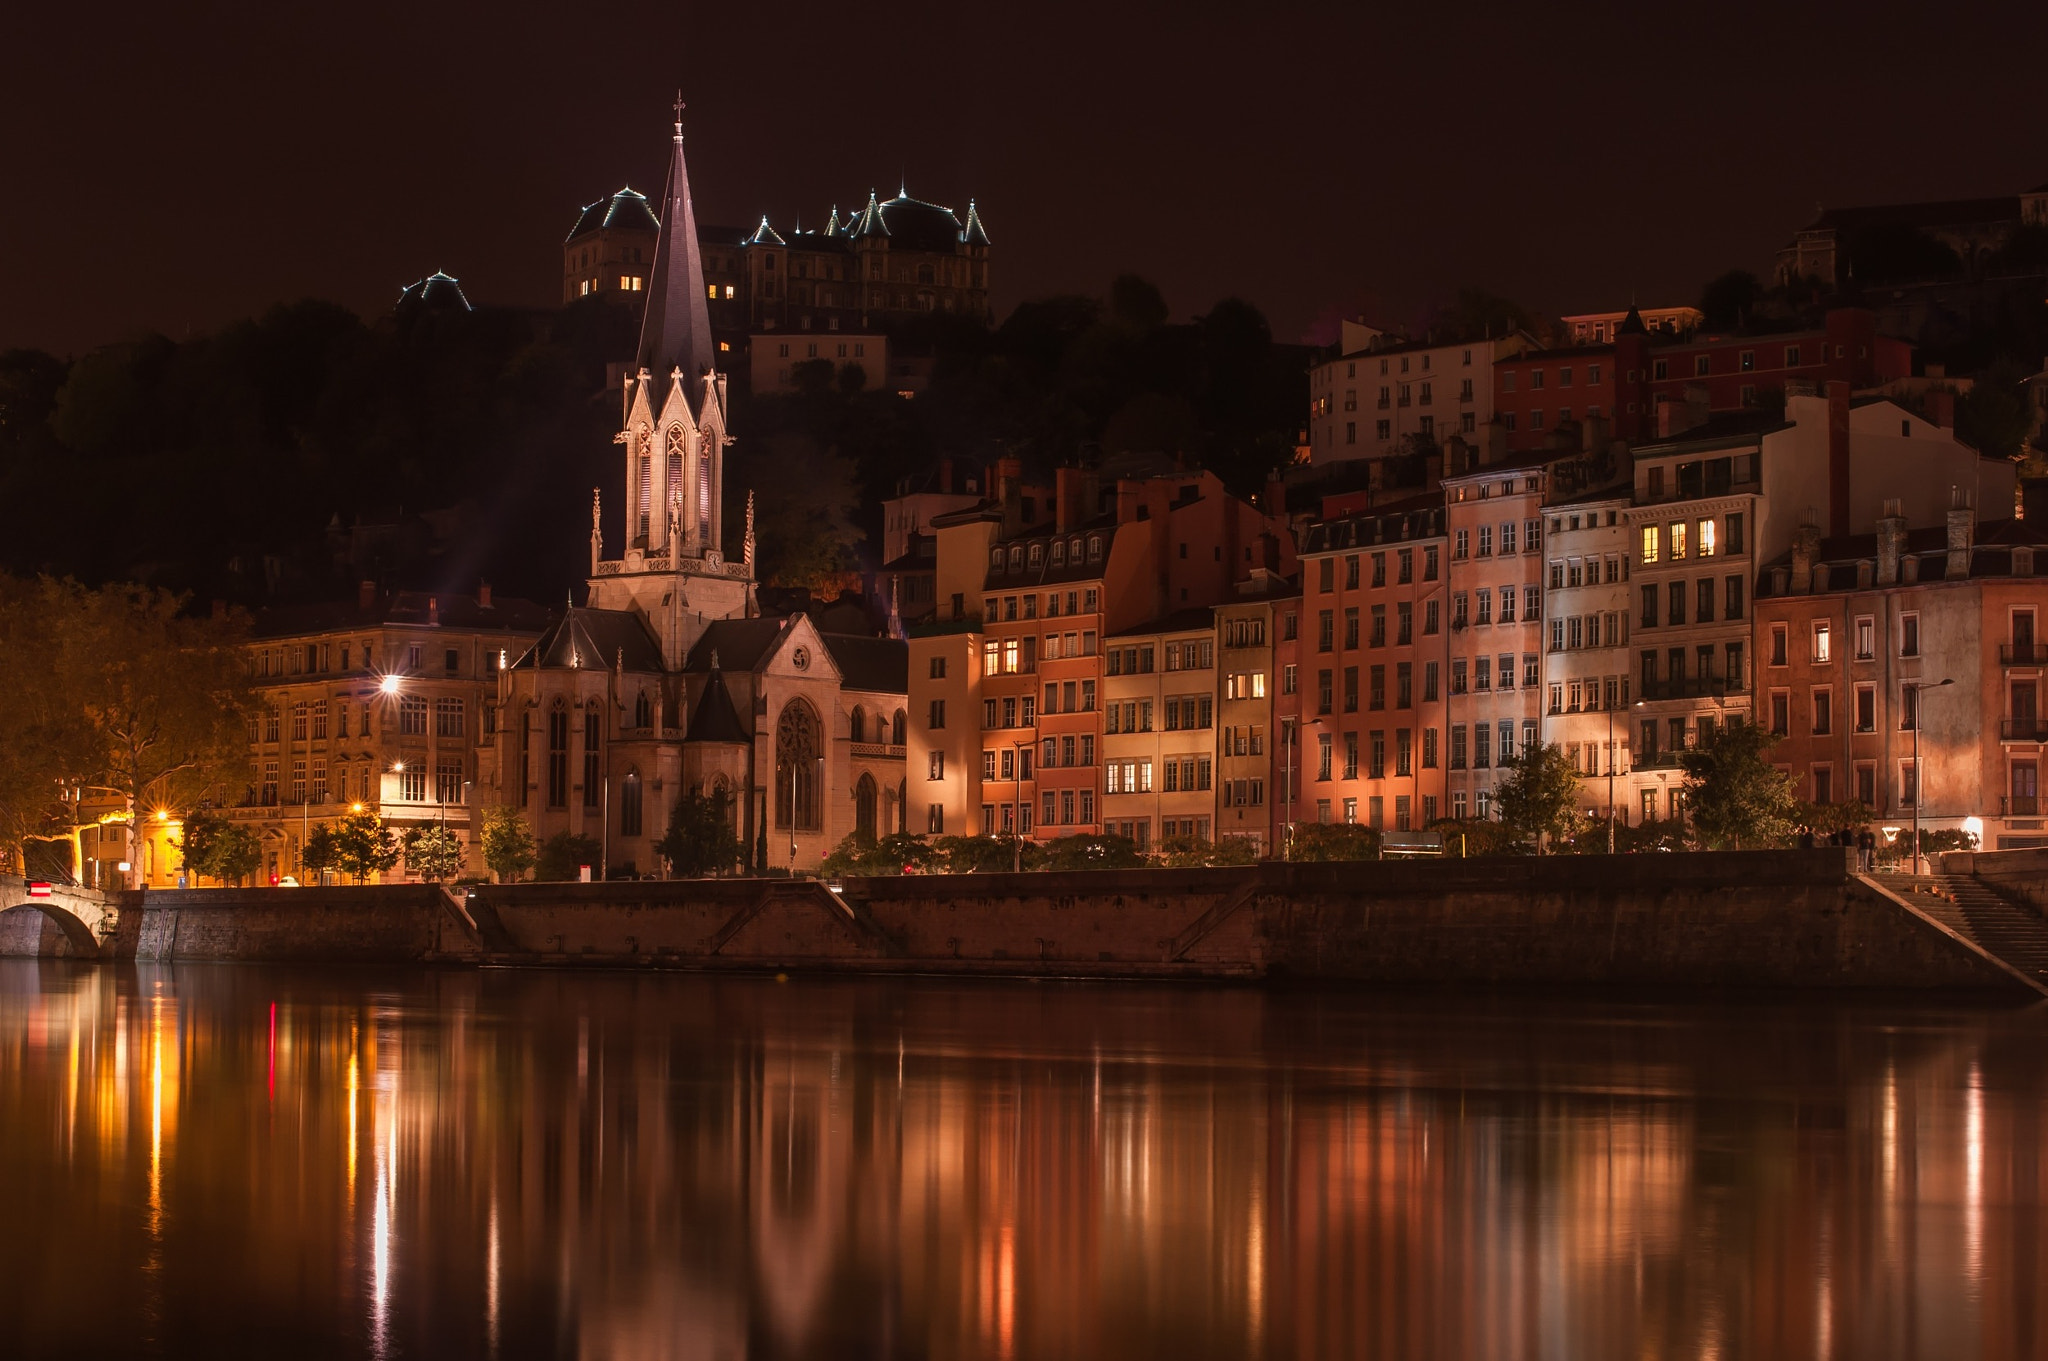 Photograph St Georges by serge vincent on 500px